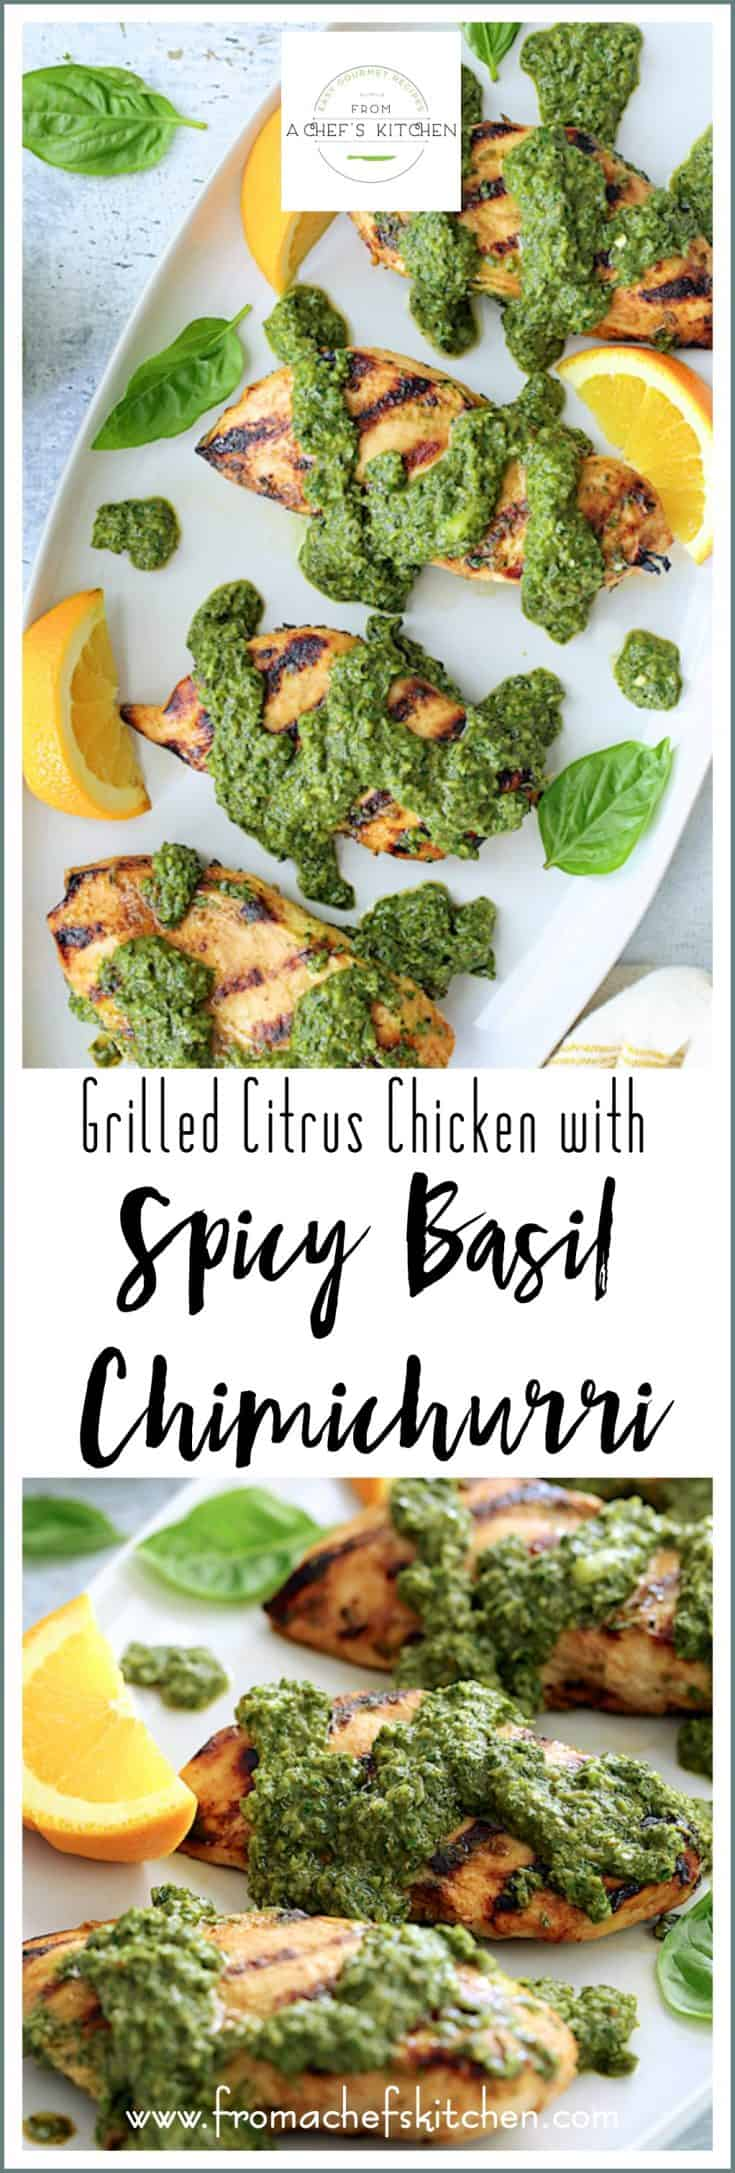 Grilled Citrus Chicken with Spicy Basil Chimichurri is the perfect flavorful late summer way to change up your grilling routine! #chicken #chickenrecipes #grilledchicken #basil #chimichurri #lightandhealthy